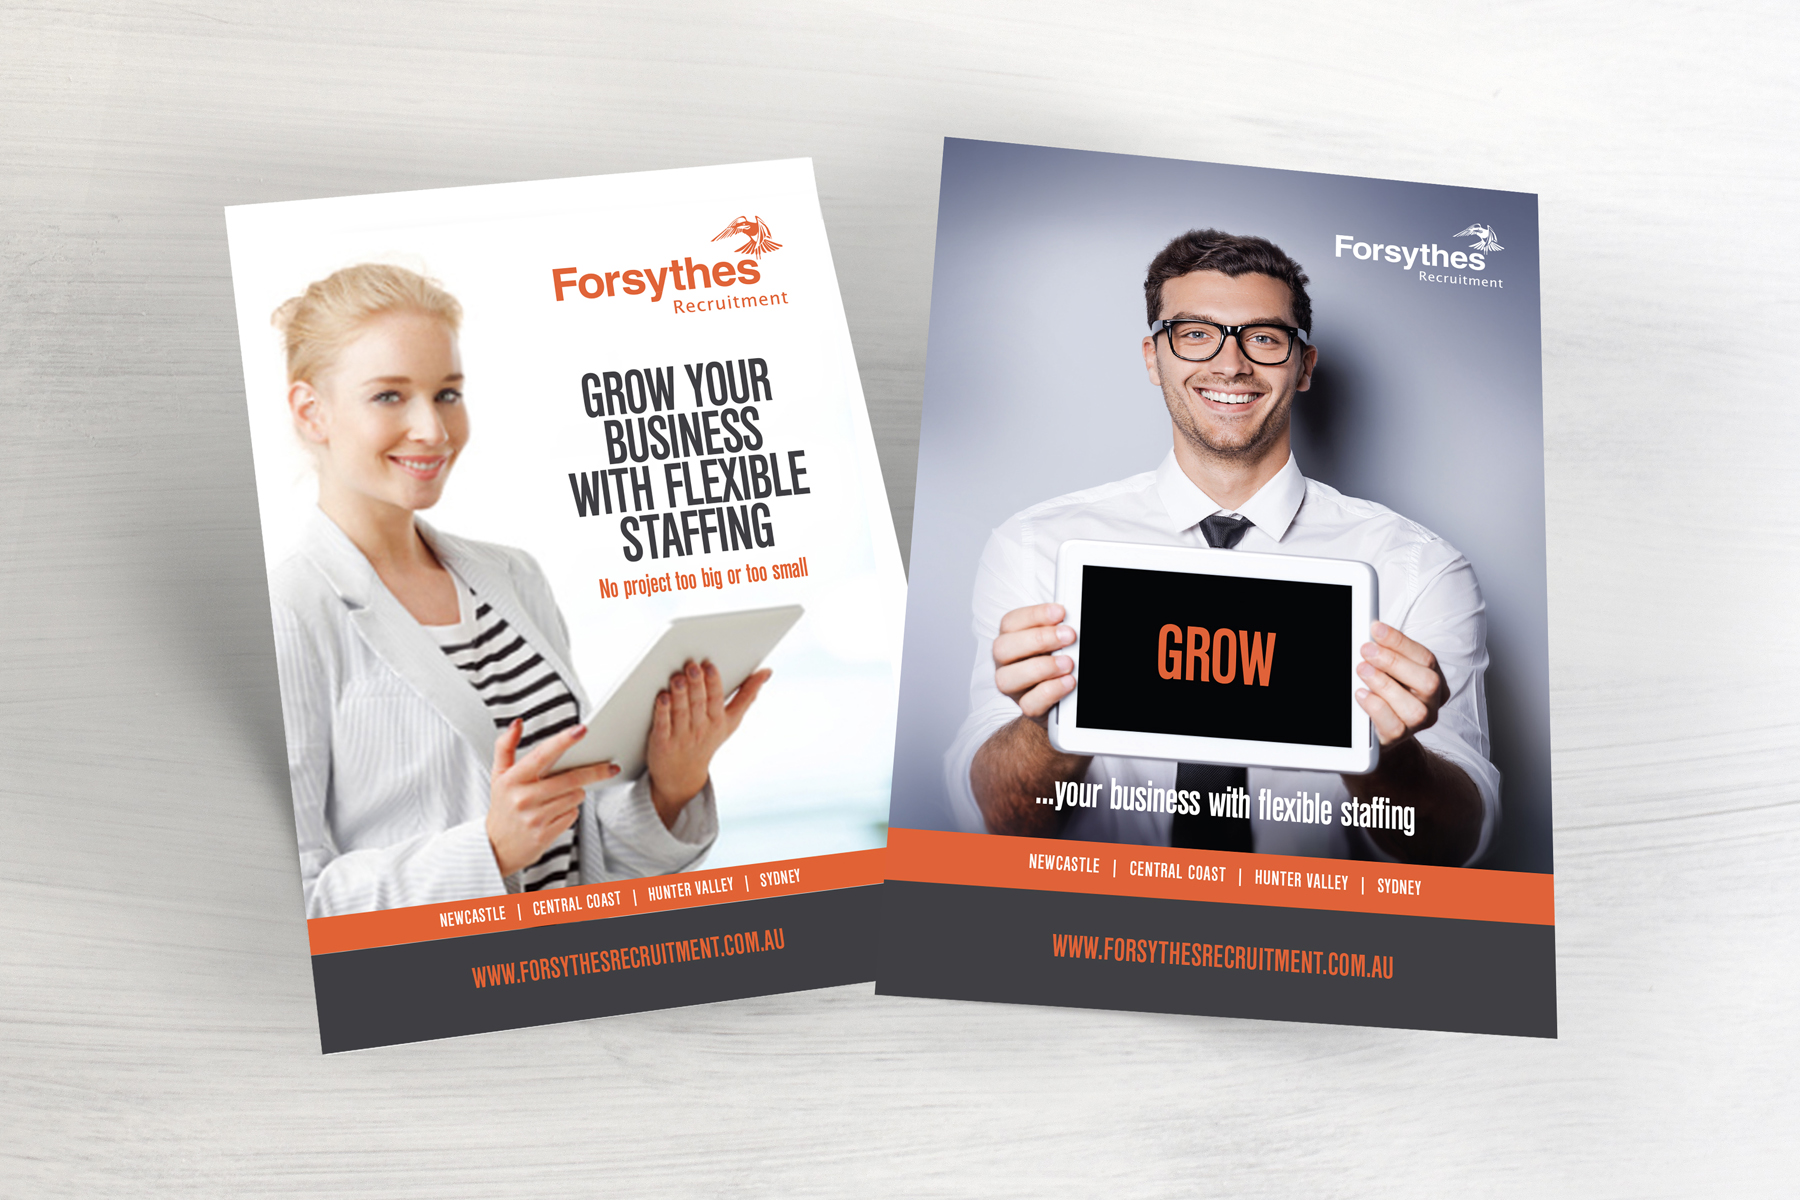 Forsythes Recruiting Full Page Advertisements